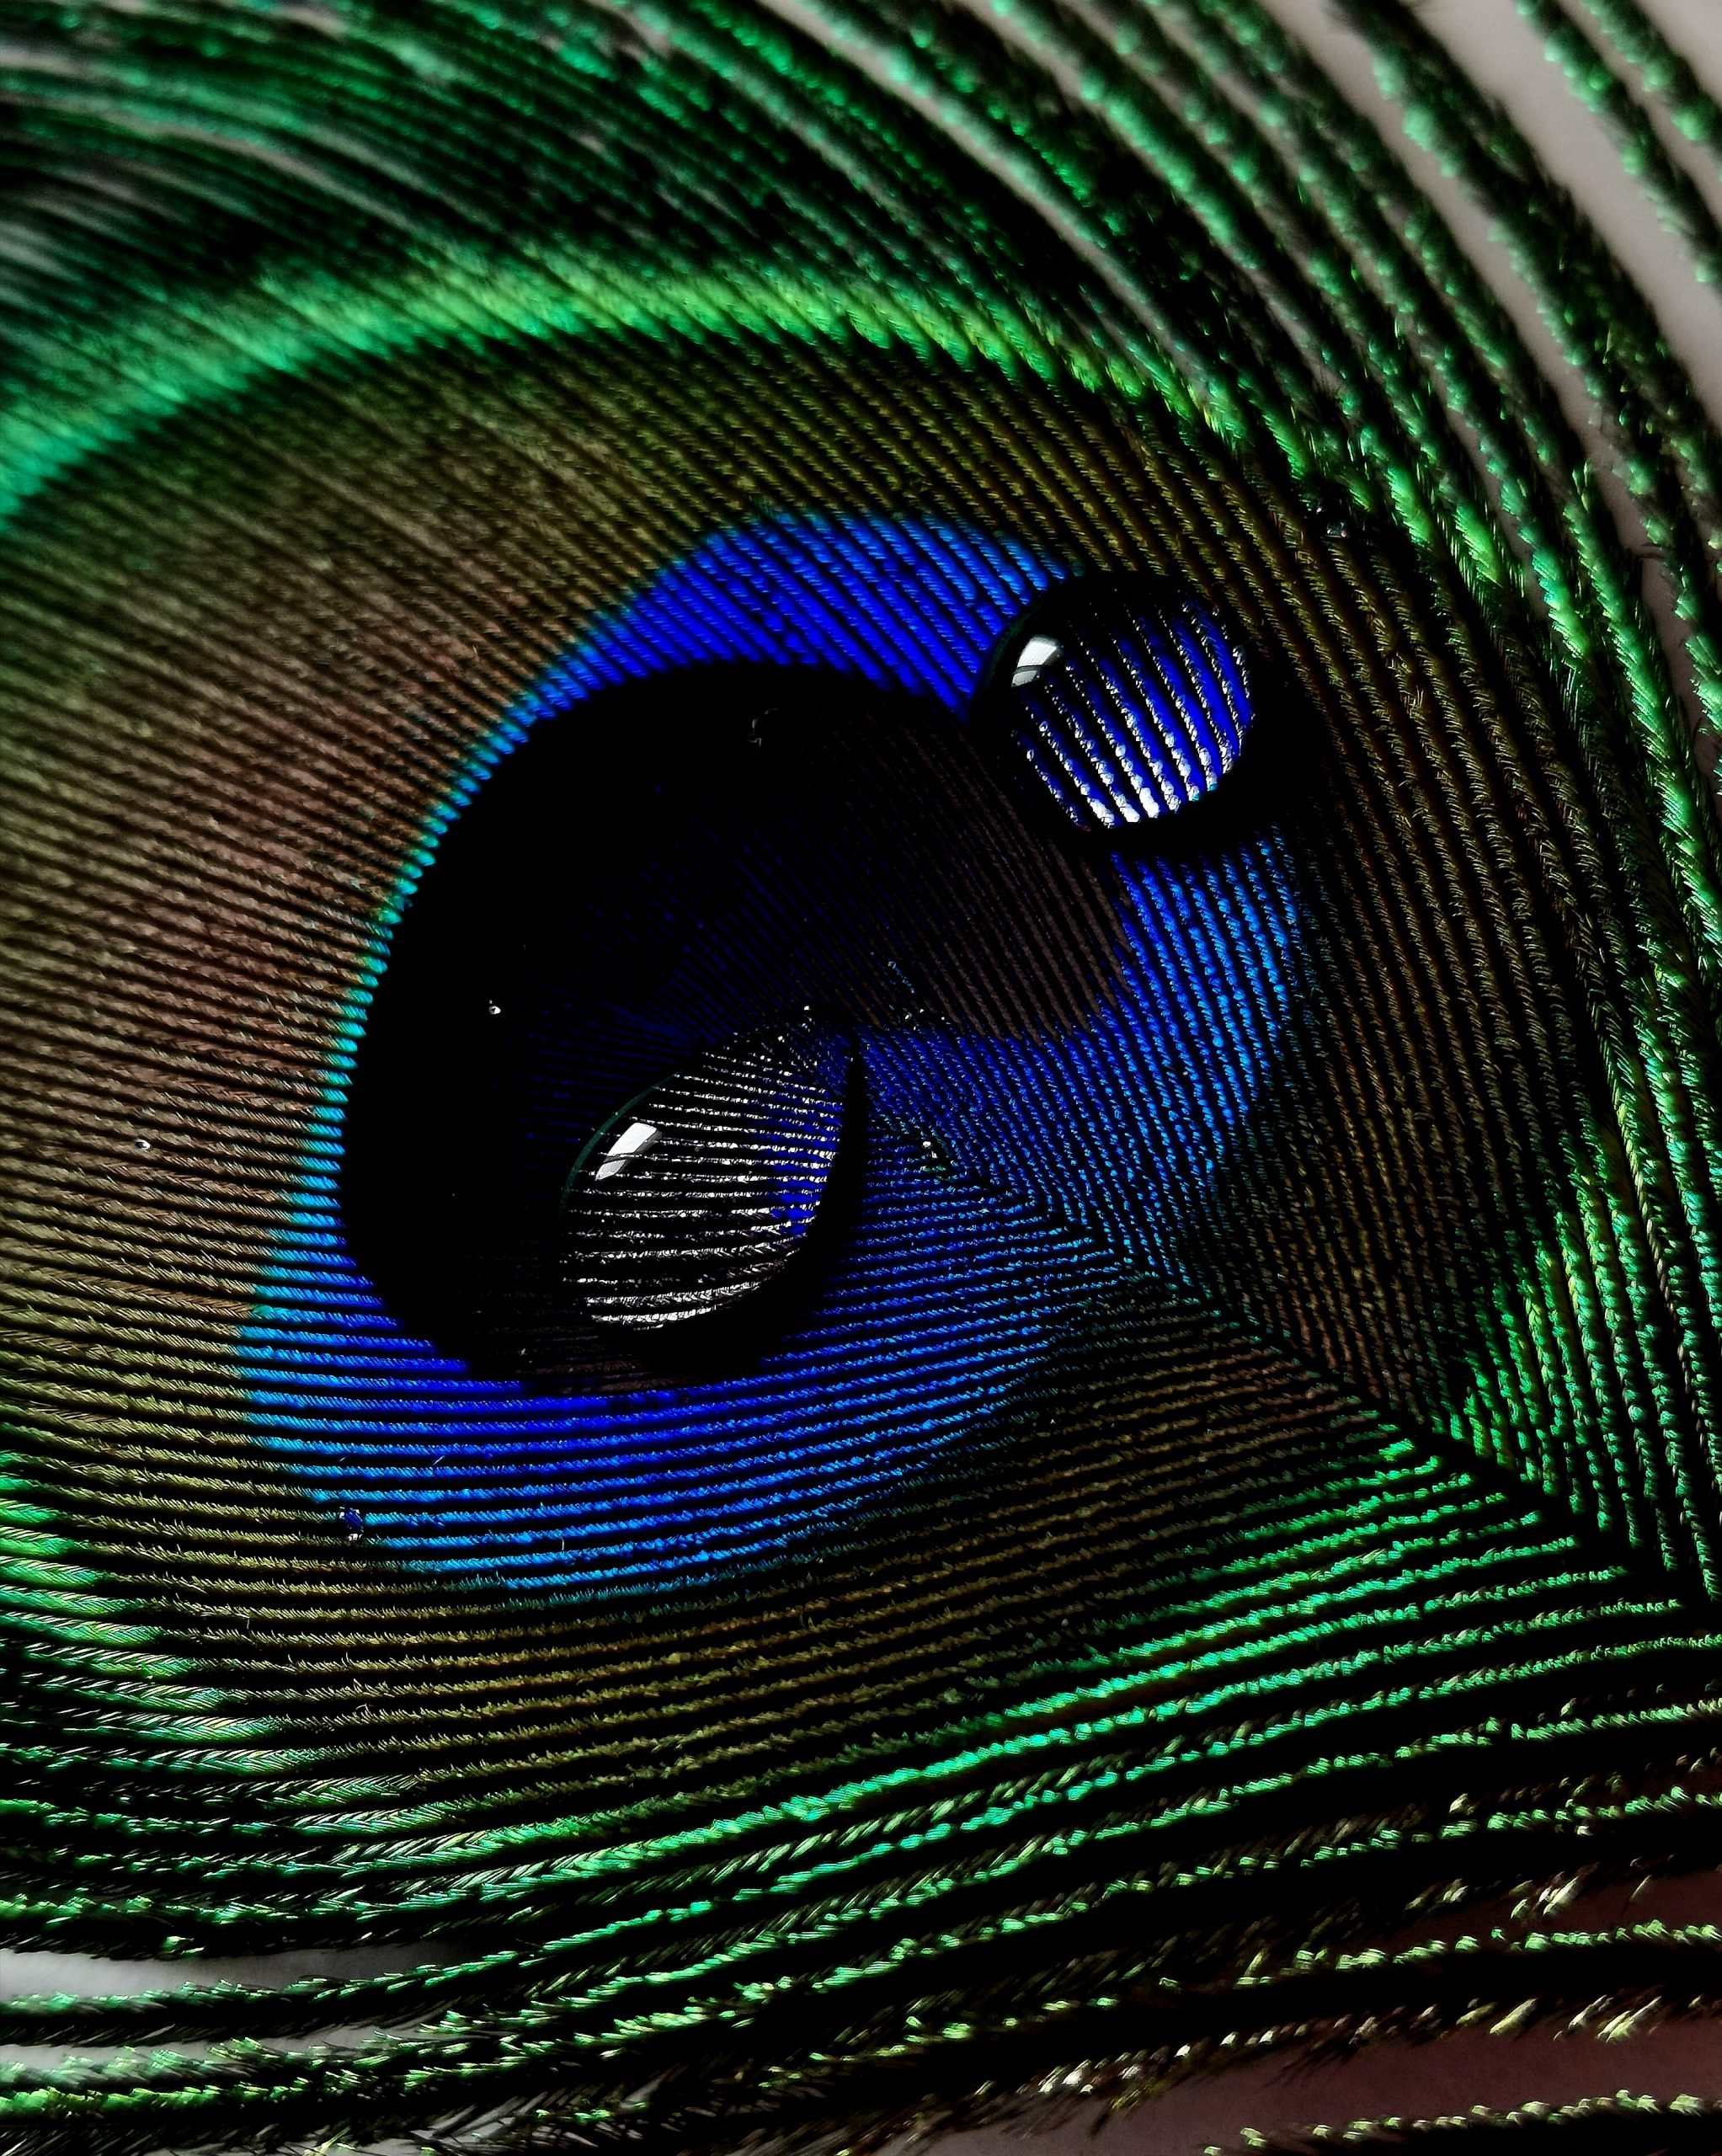 Peacock feather with fresh water droplets